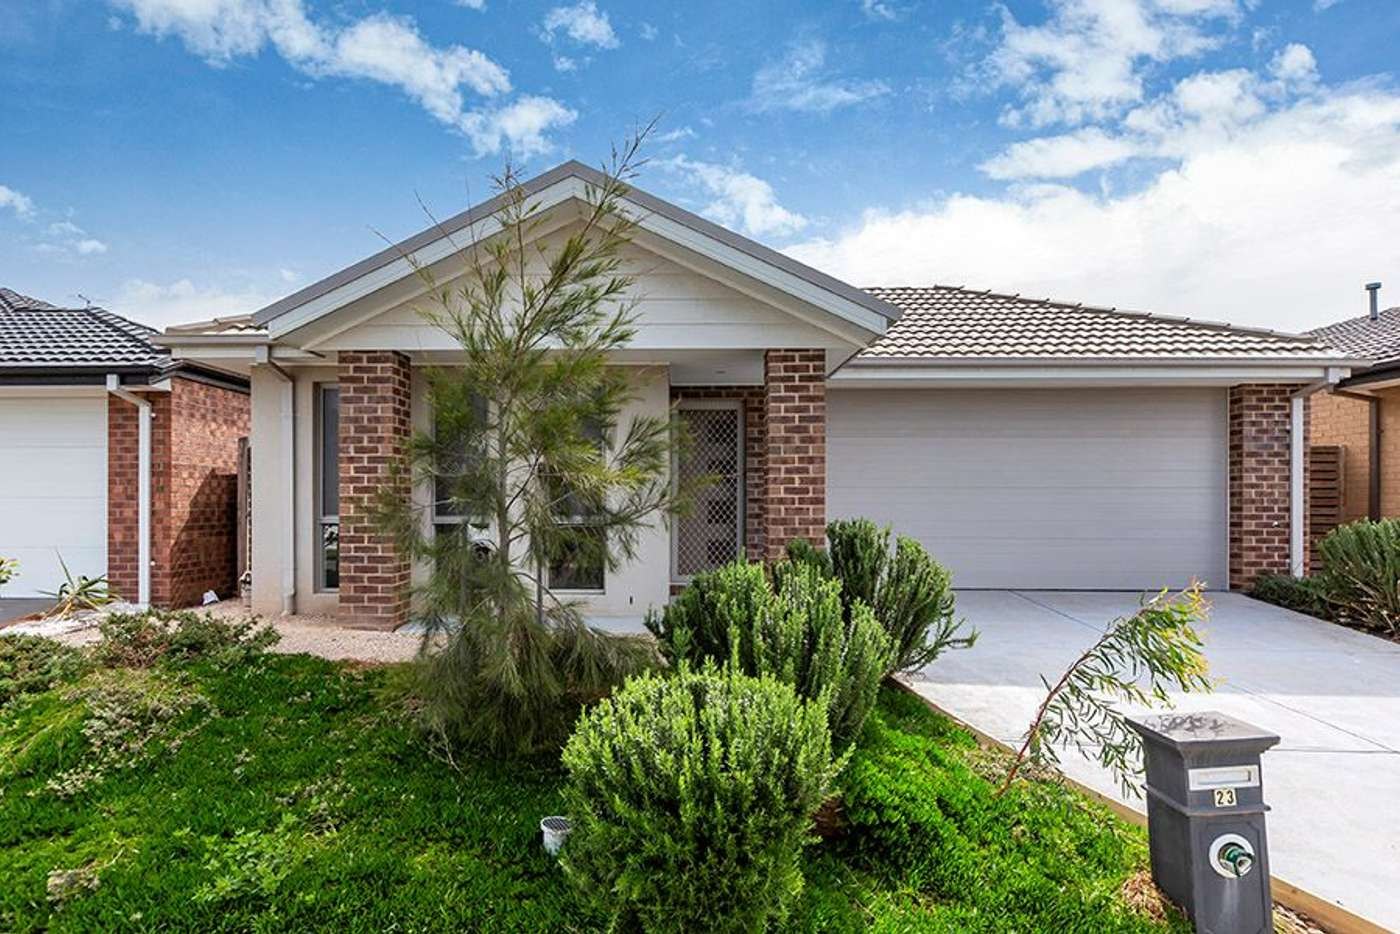 Main view of Homely house listing, 23 Gardener Drive, Point Cook VIC 3030